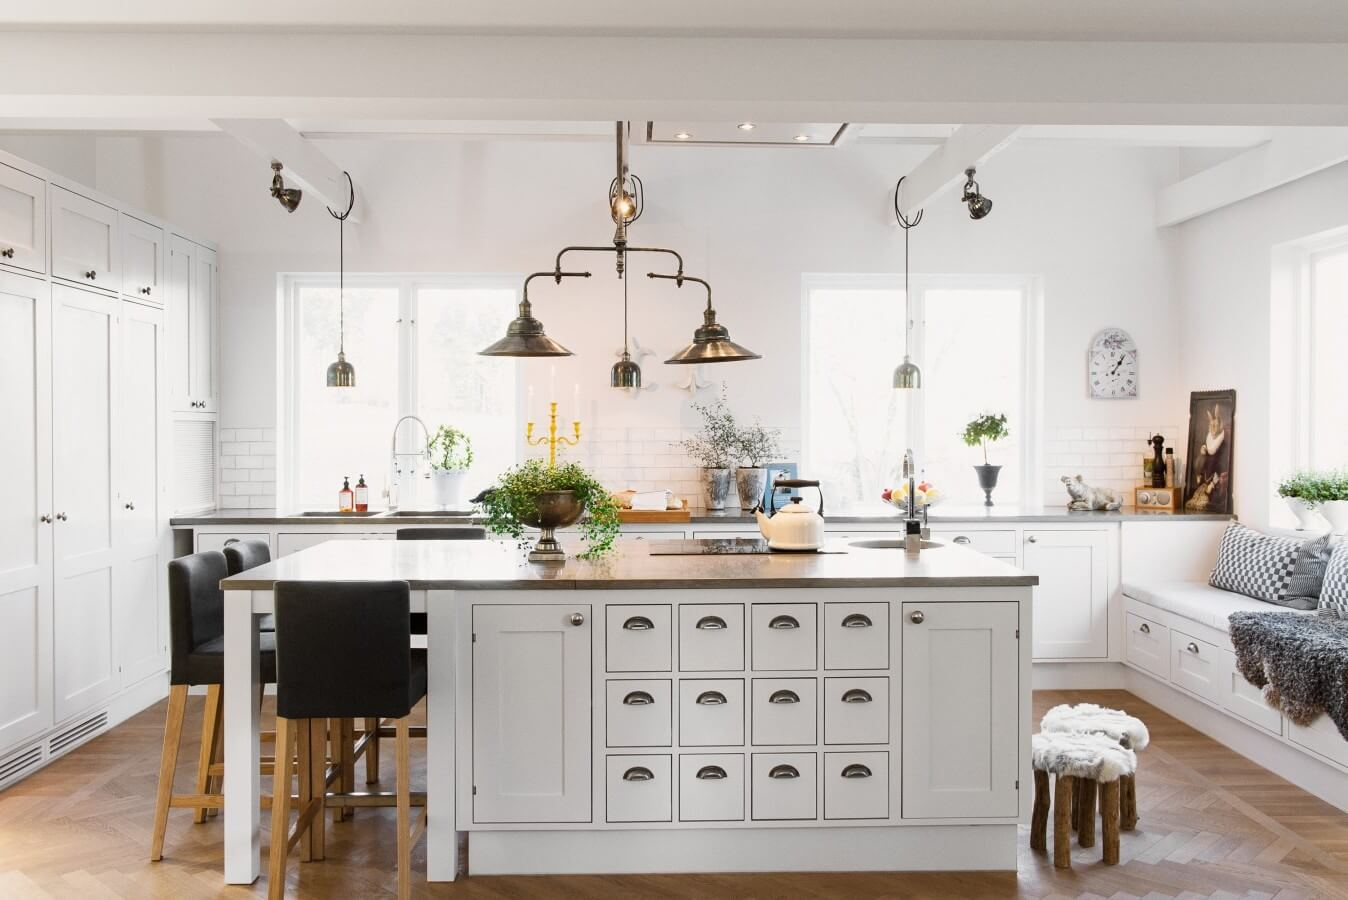 20 Spectacular Traditional Kitchen Design That Leave ... on Traditional Kitchen Decor  id=90567